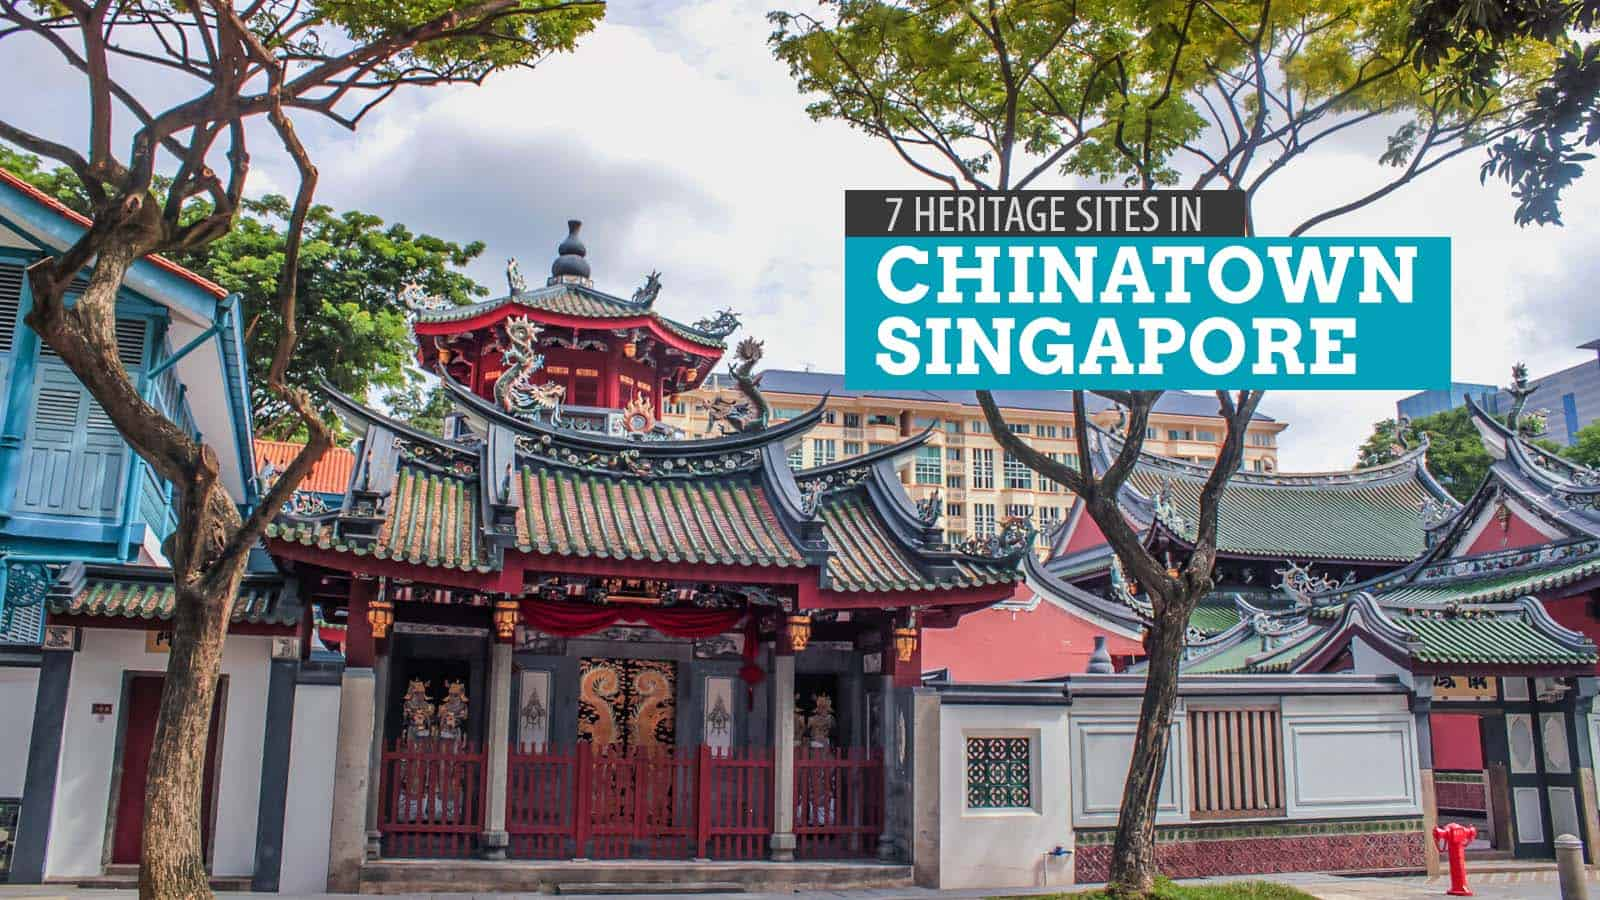 7 Things to Do in Chinatown Singapore: A DIY Heritage Walking Tour